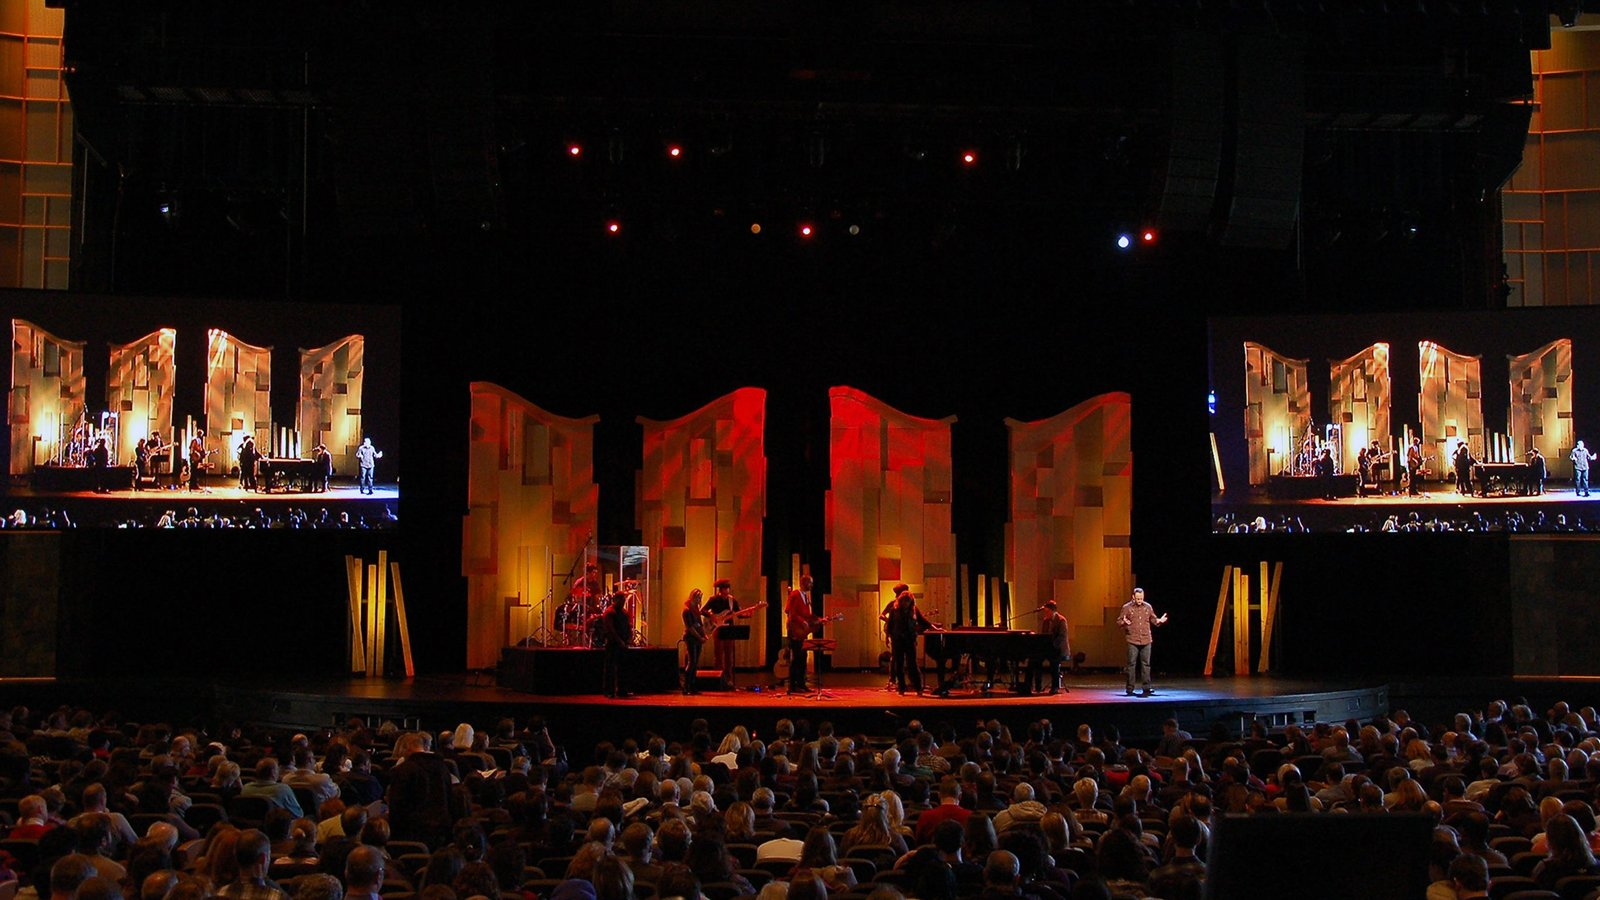 What's next for Willow Creek? - Religion News Service